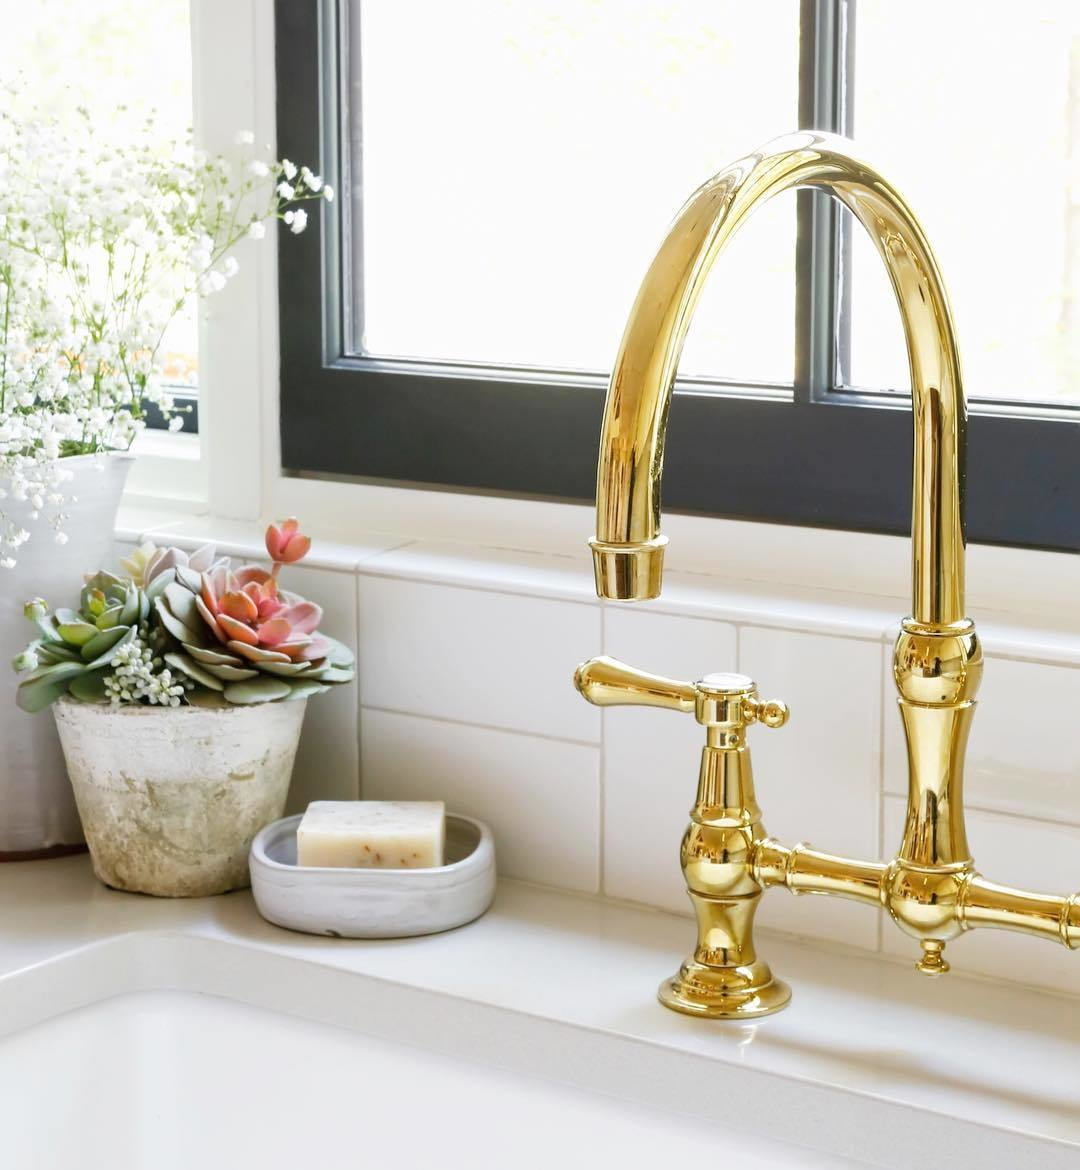 newport brass traditional two hole bride kitchen faucet with lever handles and gooseneck spout in polished gold - the ultimate guide to luxury plumbing by the delight of design